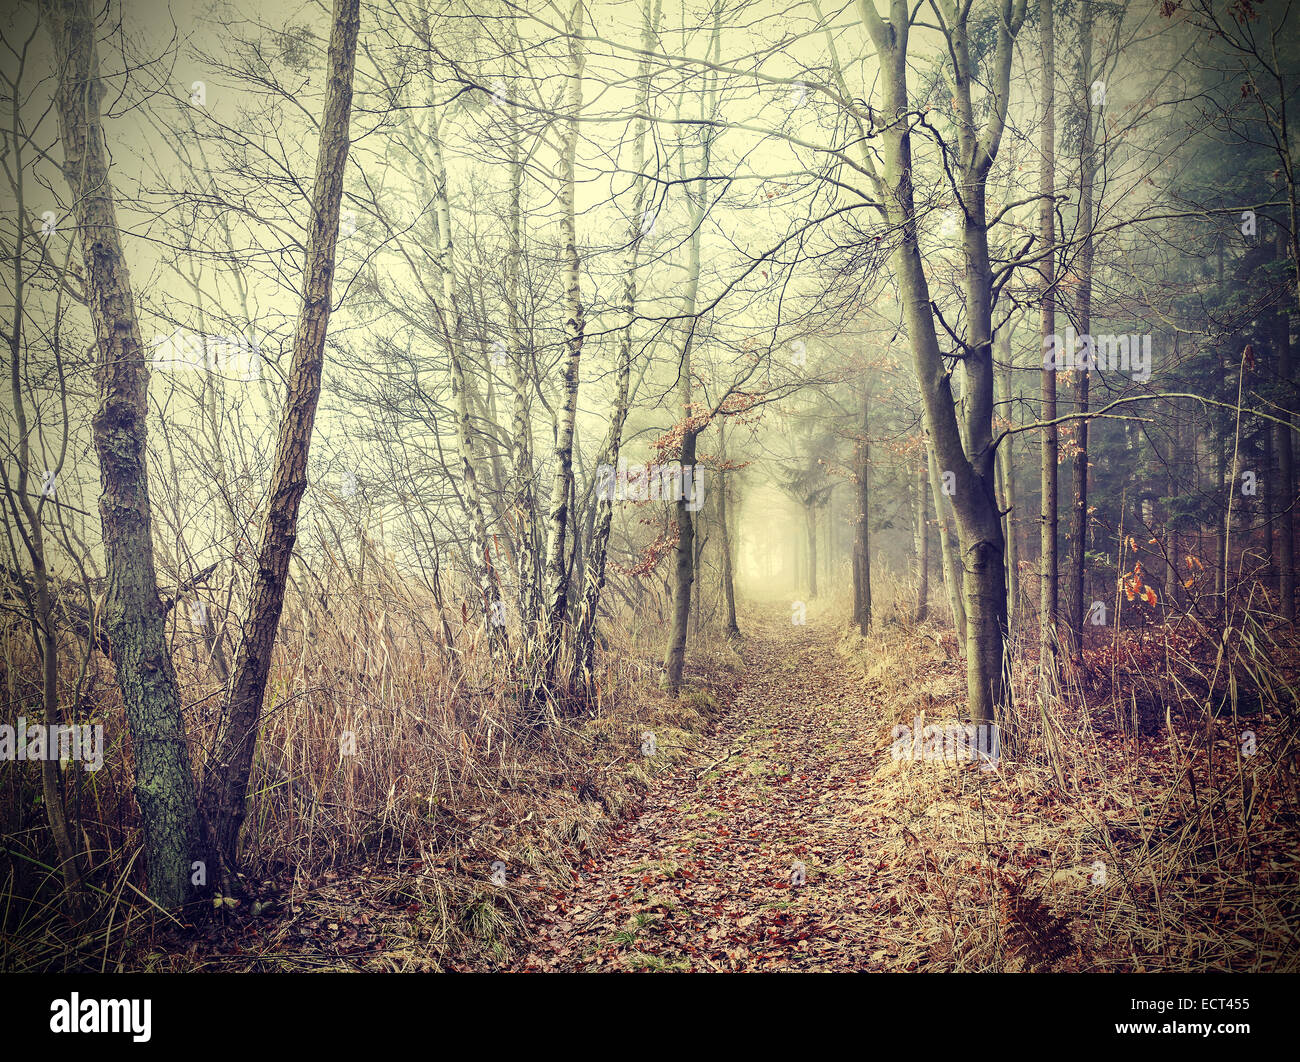 Mysterious autumnal forest in a foggy day. - Stock Image